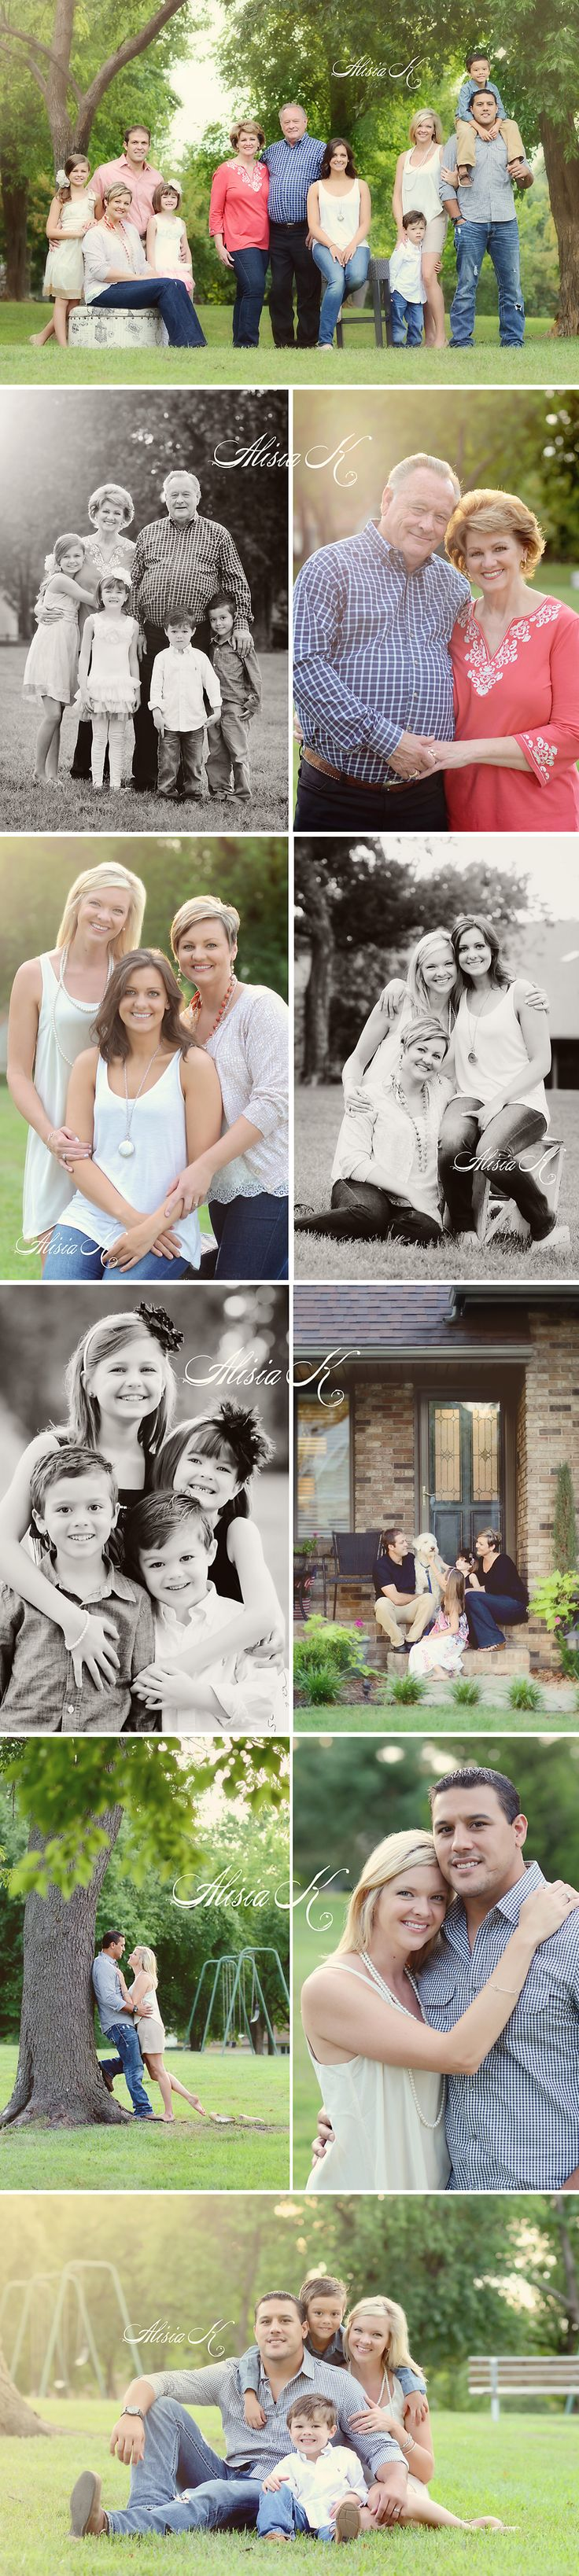 Alisia K Photography, Family Photographer, Springfield, Missouri